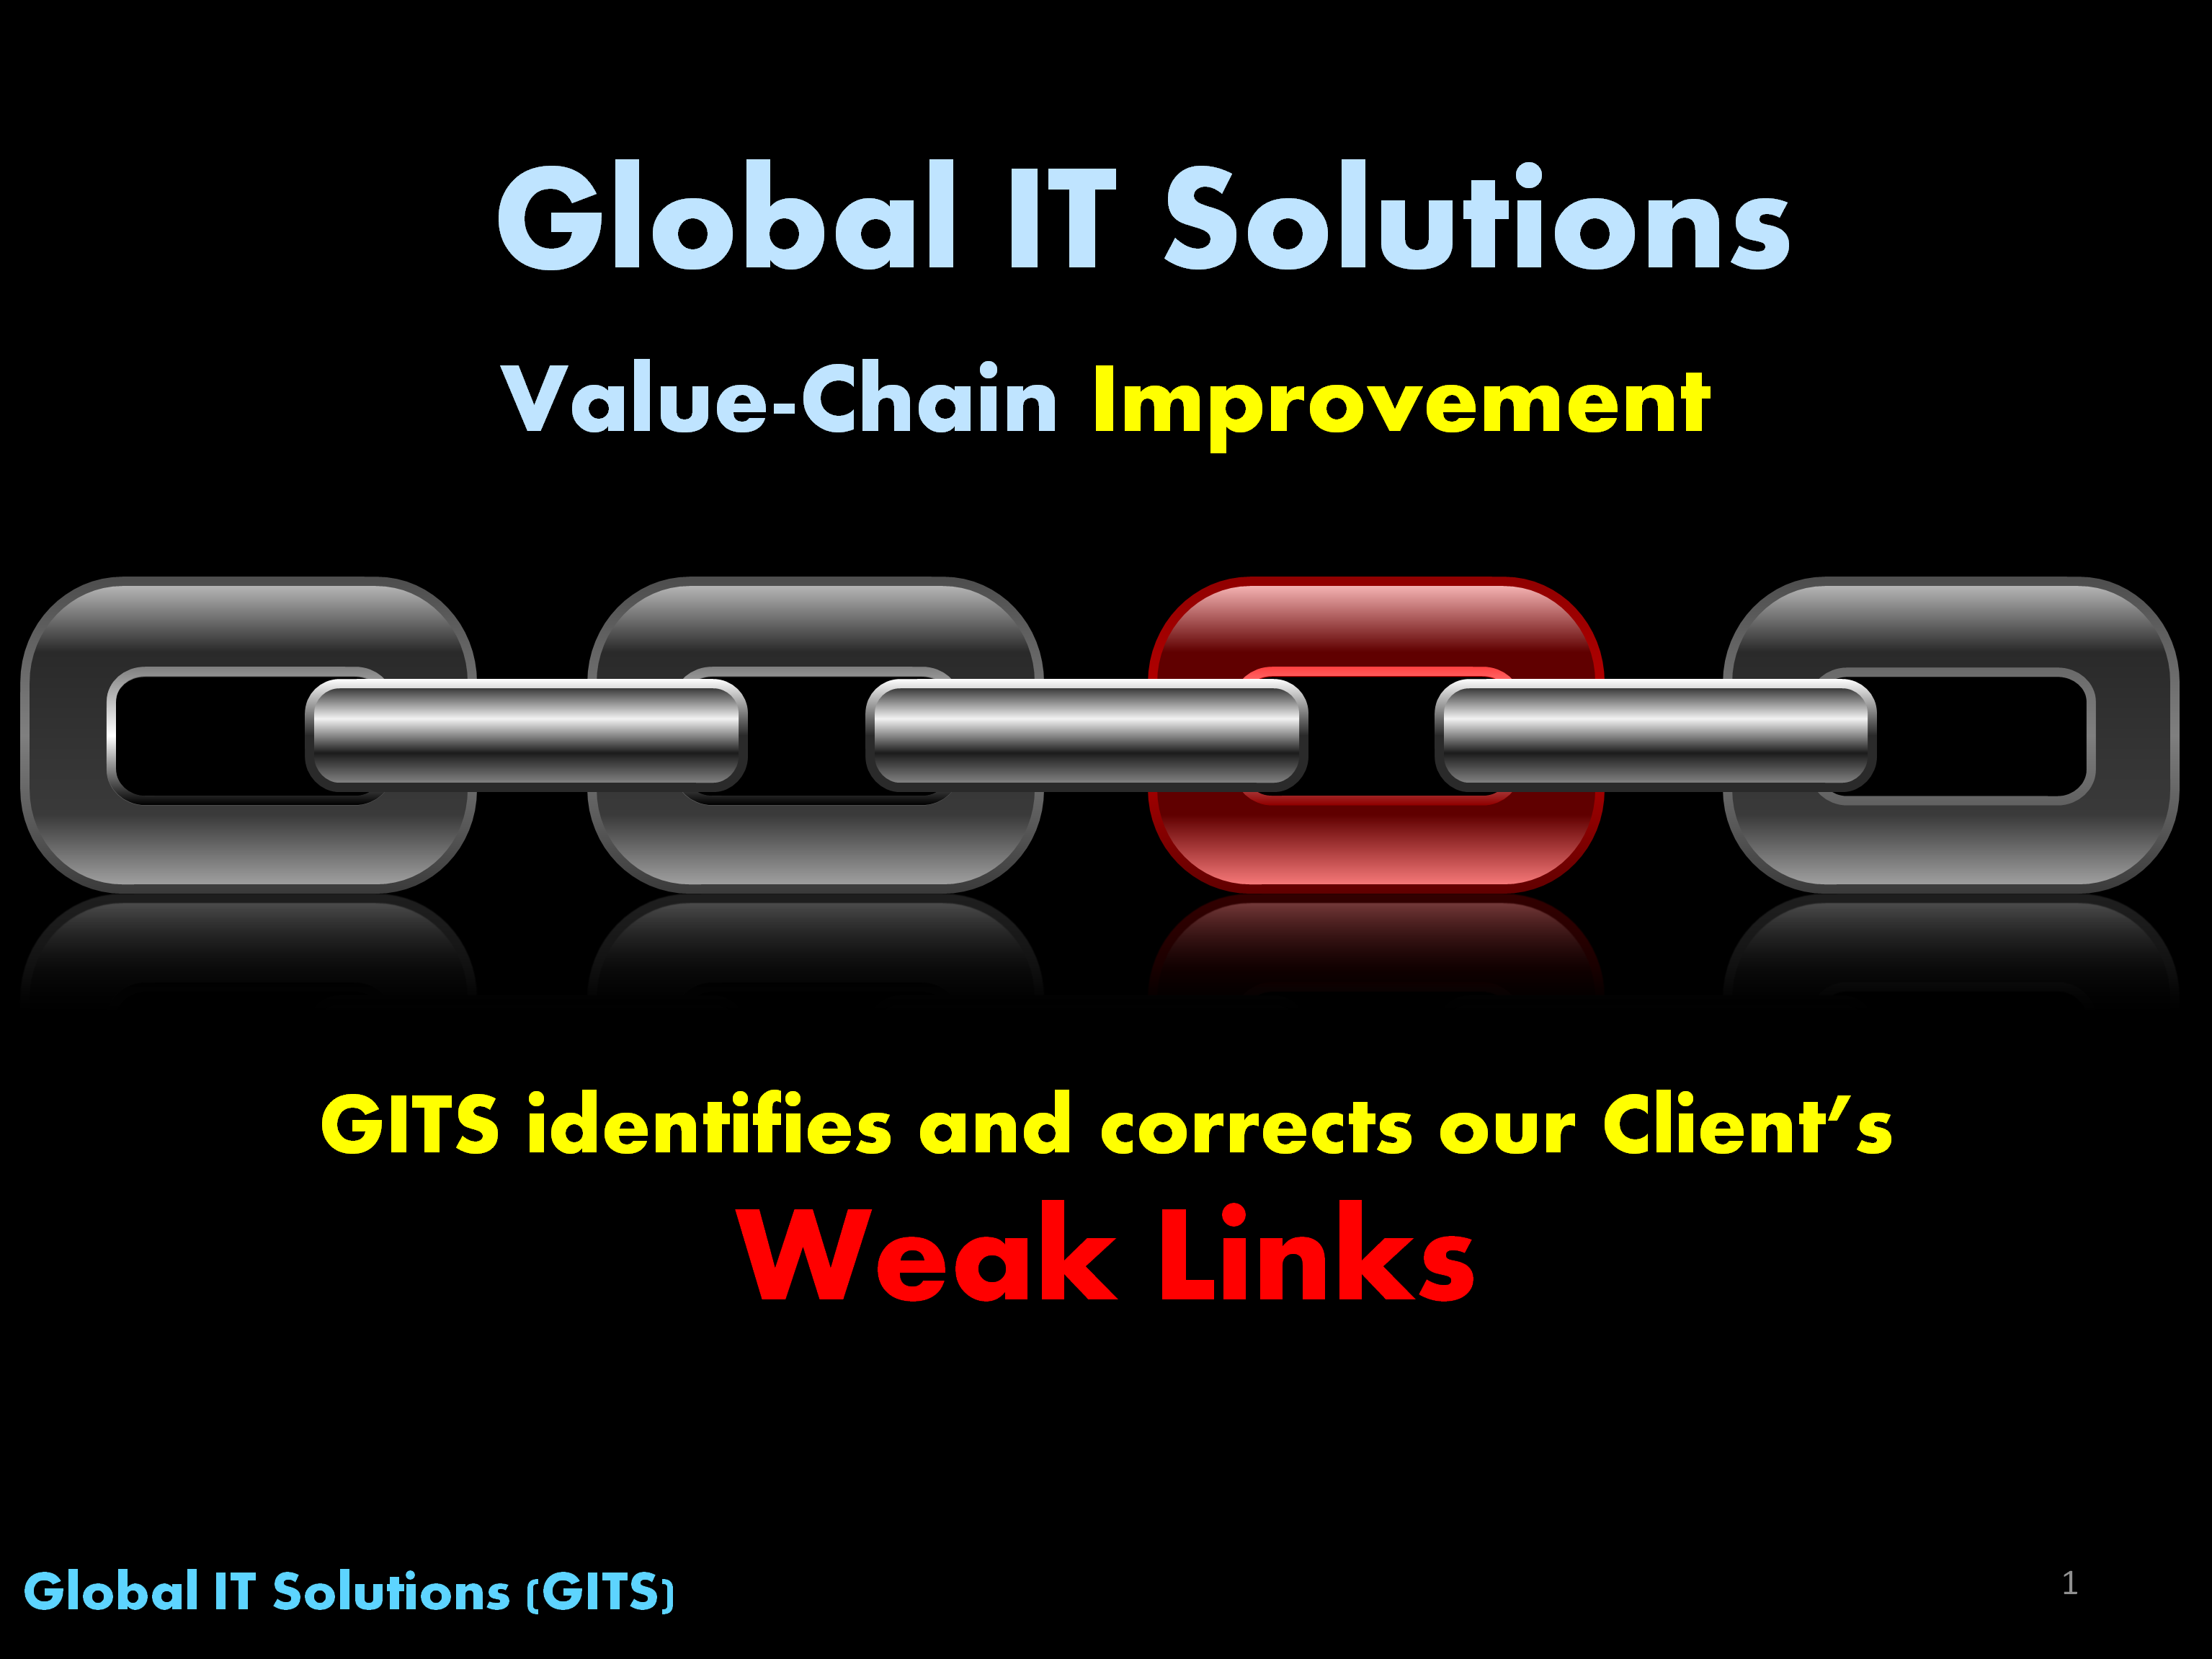 about us weak links website 3